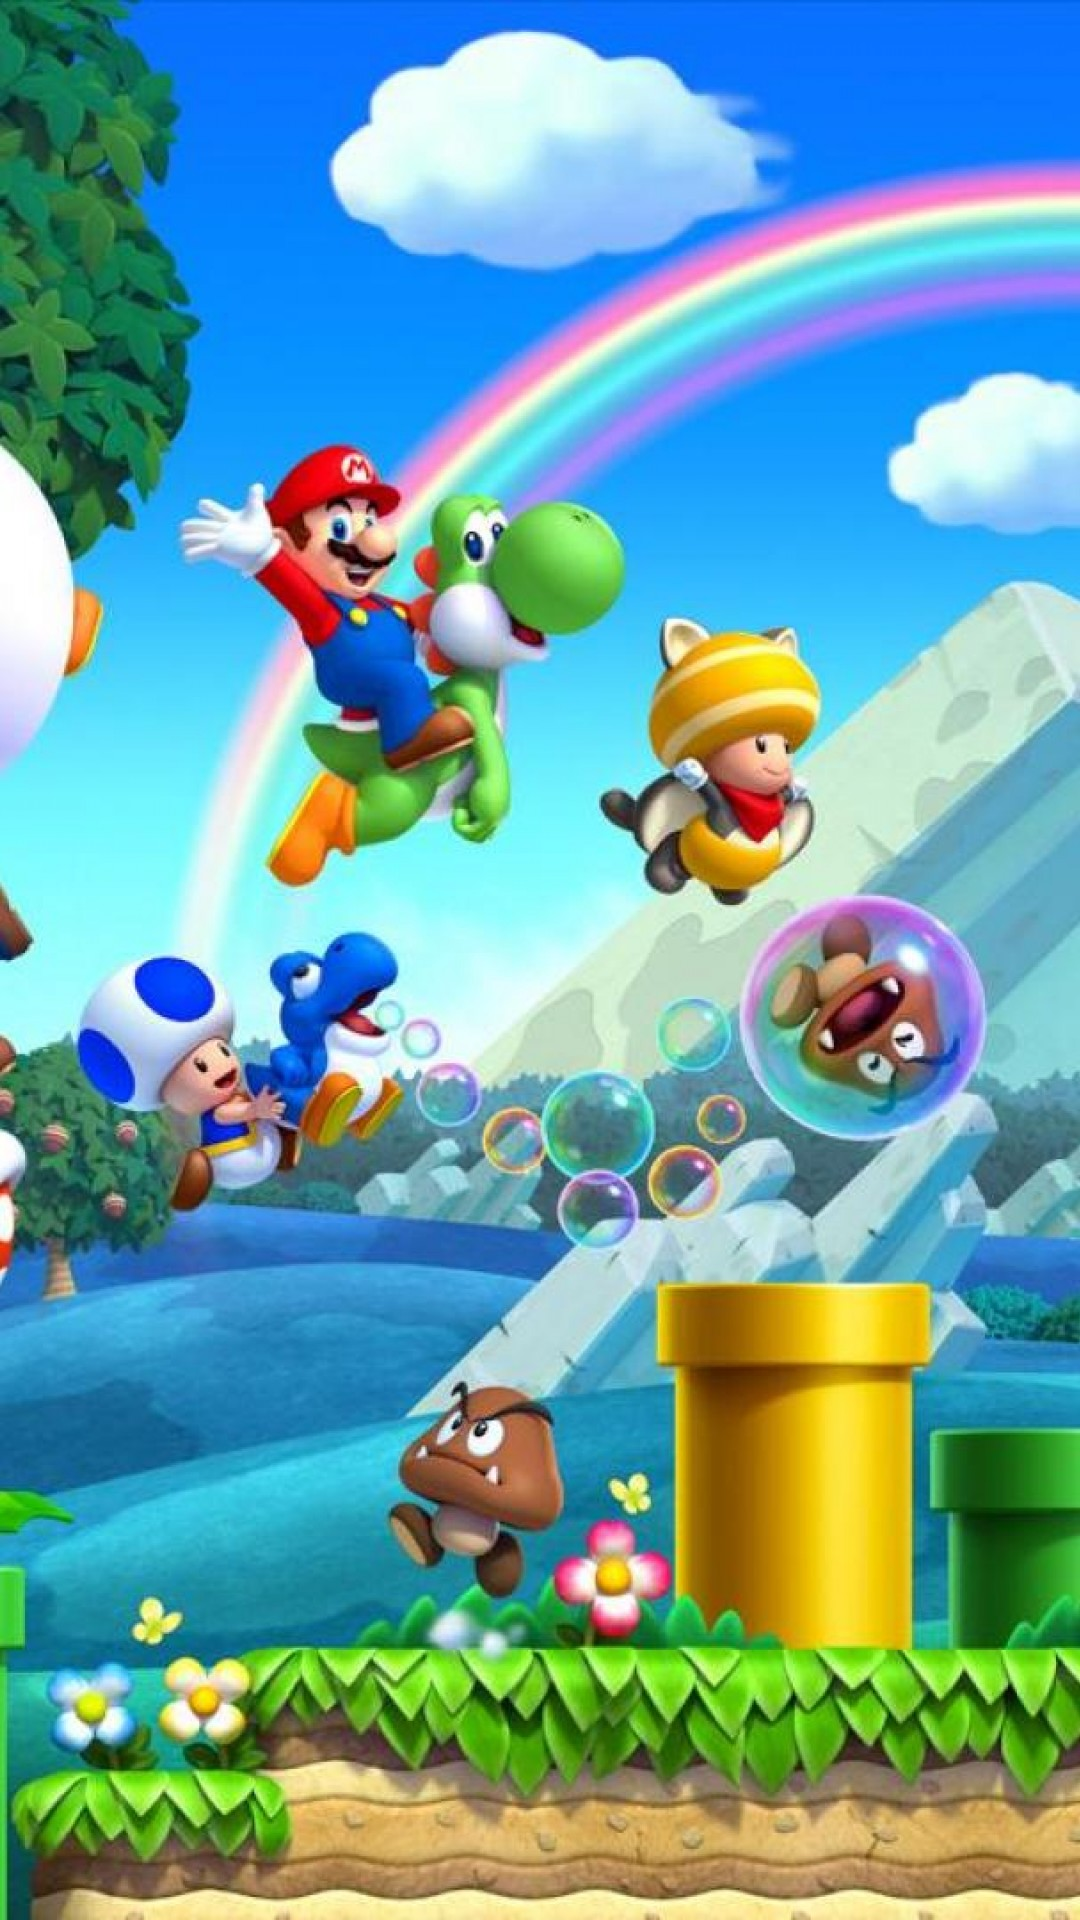 Funny Mario And Luigi Minions HD Wallpaper iPhone 6 plus